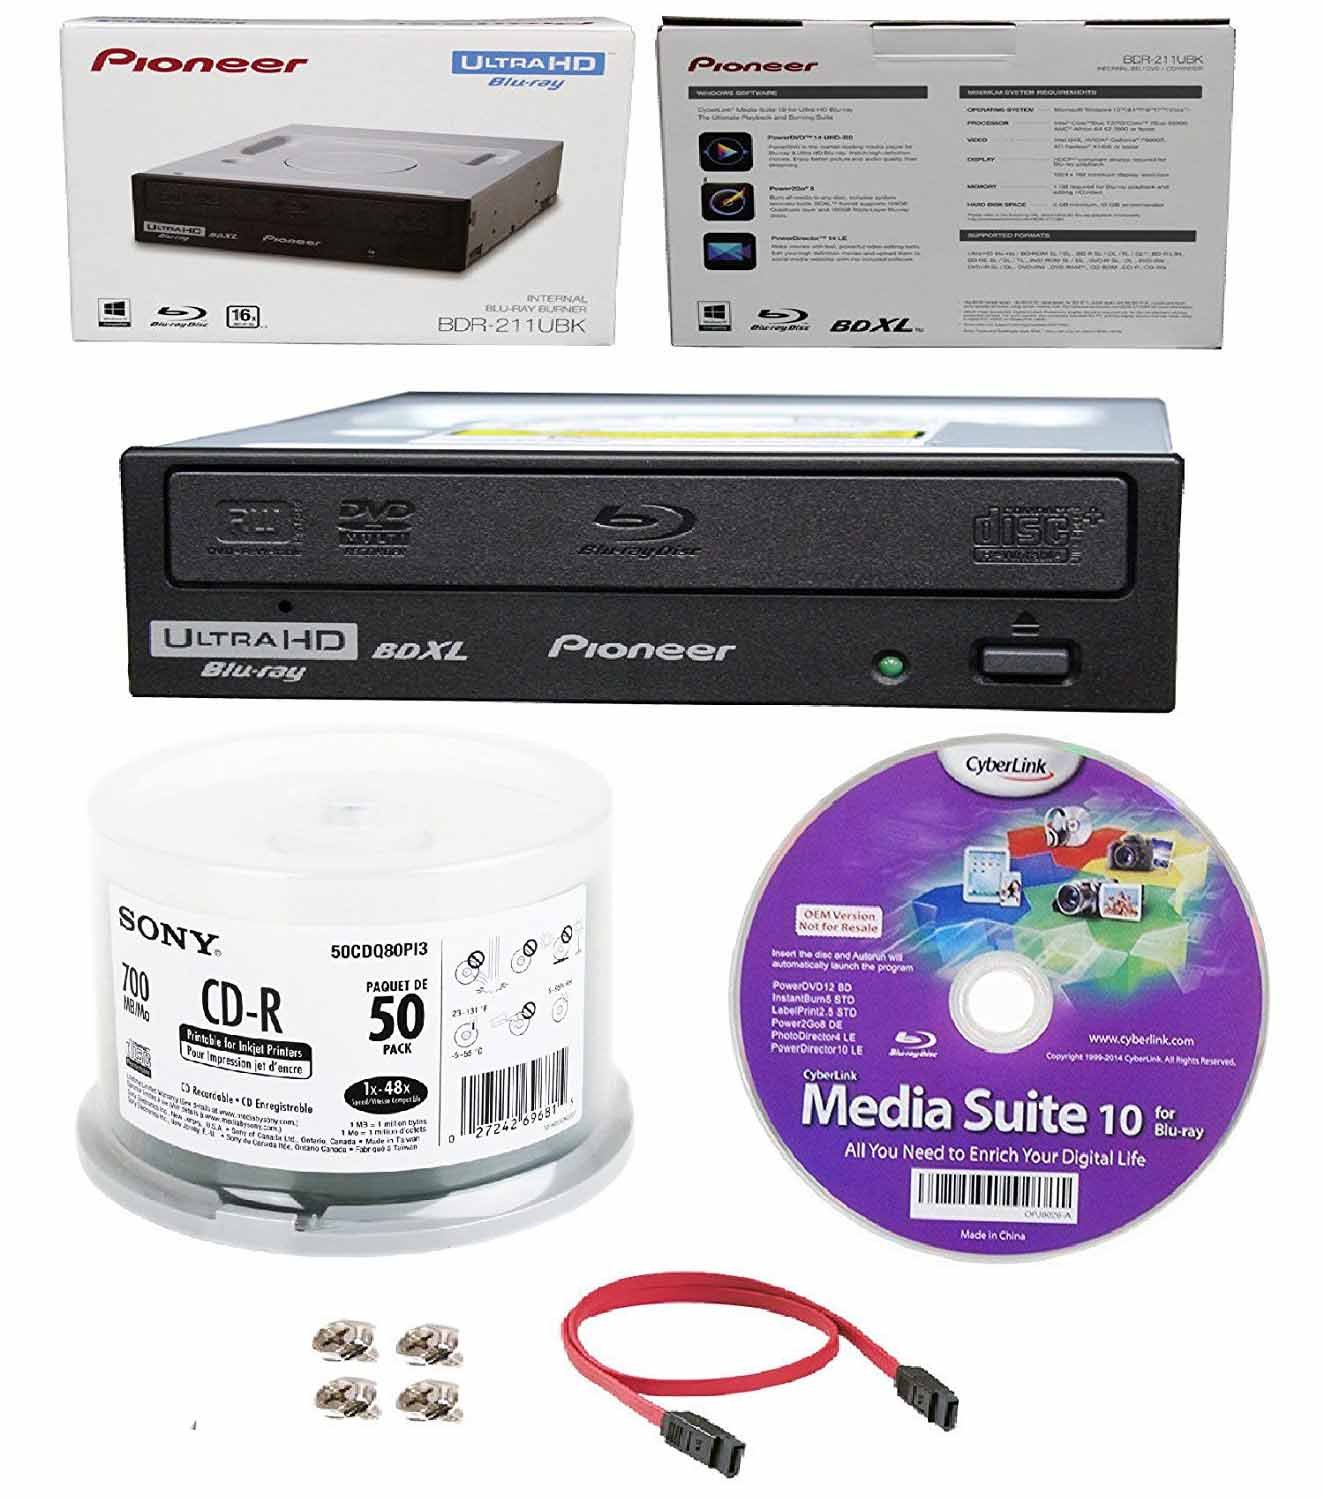 Pioneer 16x BDR-211UBK Internal Ultra HD Blu-ray BDXL Burner, Cyberlink Software and Cable Accessories Bundle with 50pk CD-R Sony 700MB 48X White Inkjet Printable